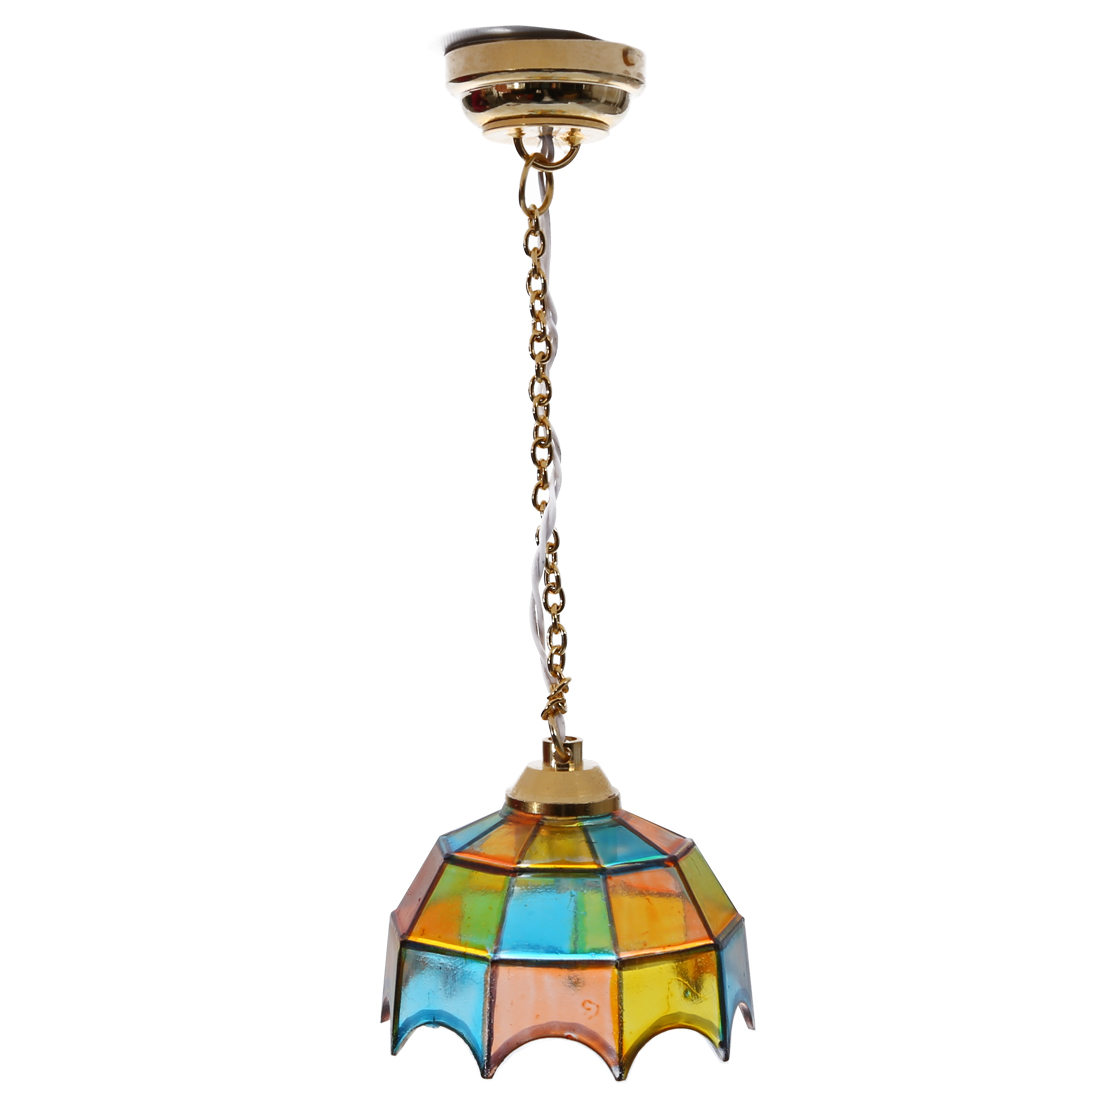 Metal 1:12 Dollhouse Miniature Ceiling Lamp Model With Multicolor Umbrella Shape Lampshade